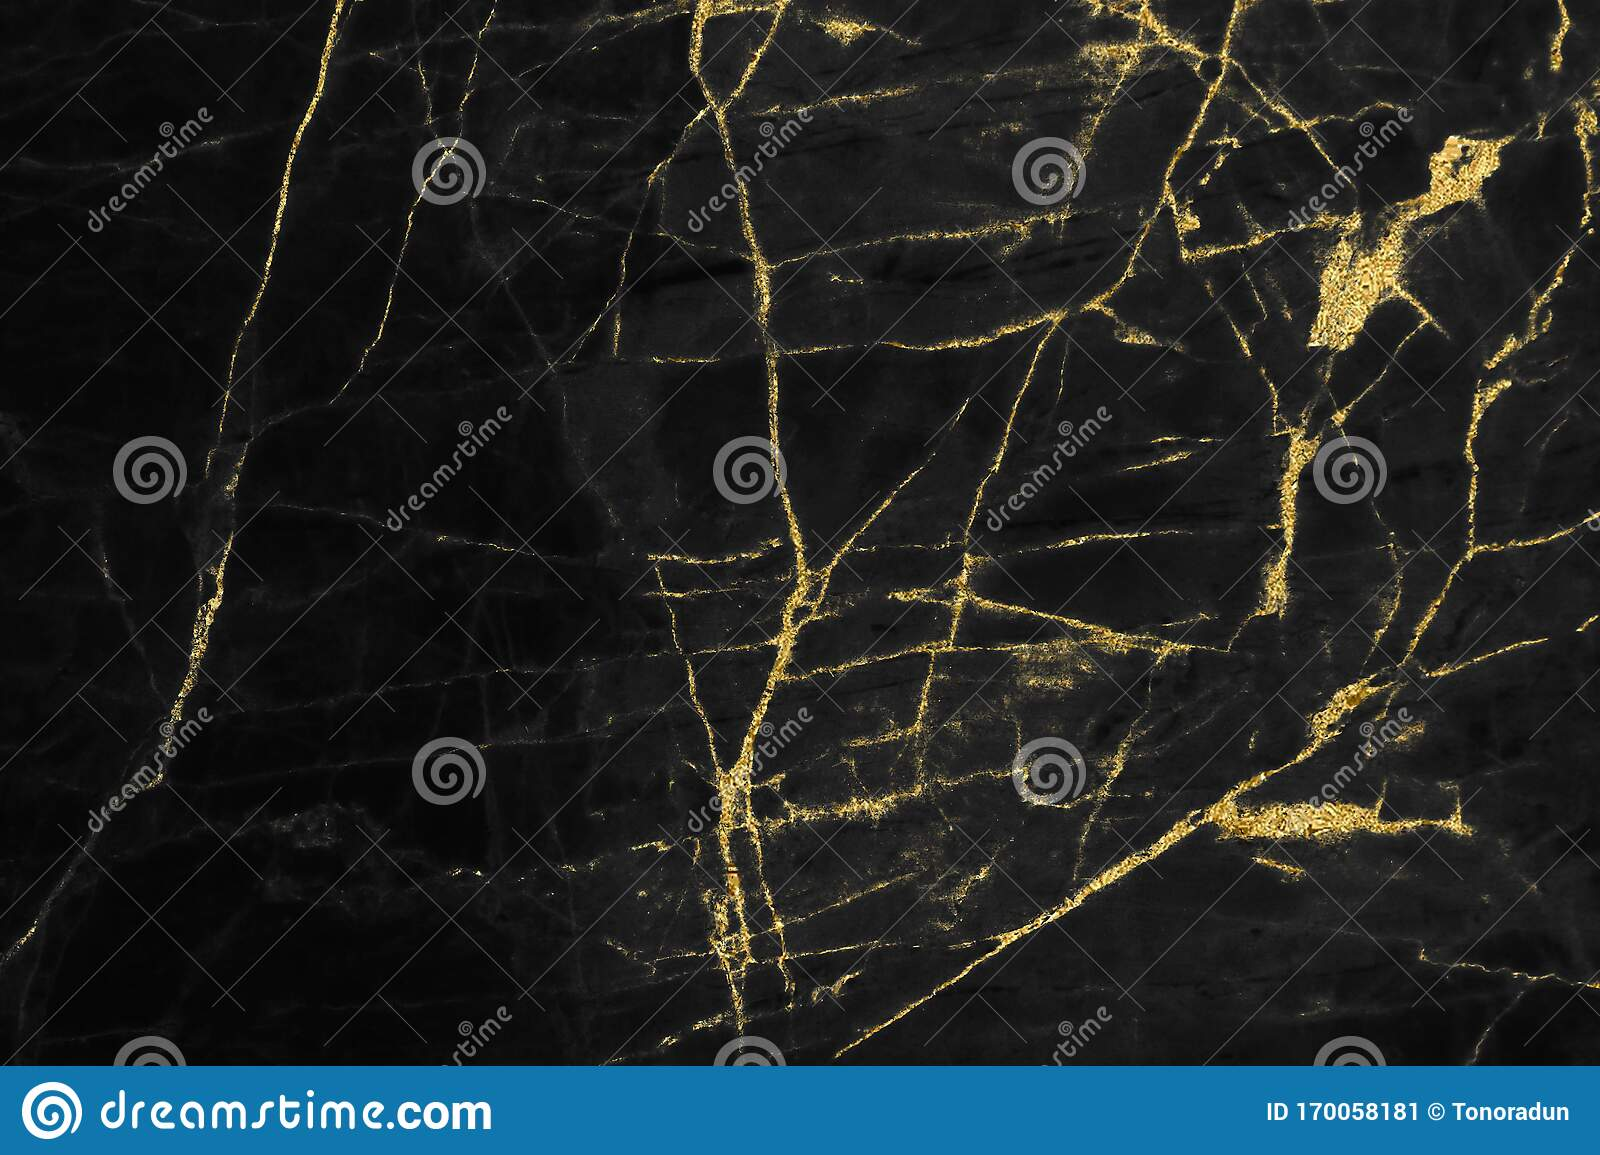 Black And Gold Marble Texture Design For Cover Book Or Brochure Poster Wallpaper Background Or Realistic Business And Design Art Stock Image Image Of Glitter Distress 170058181